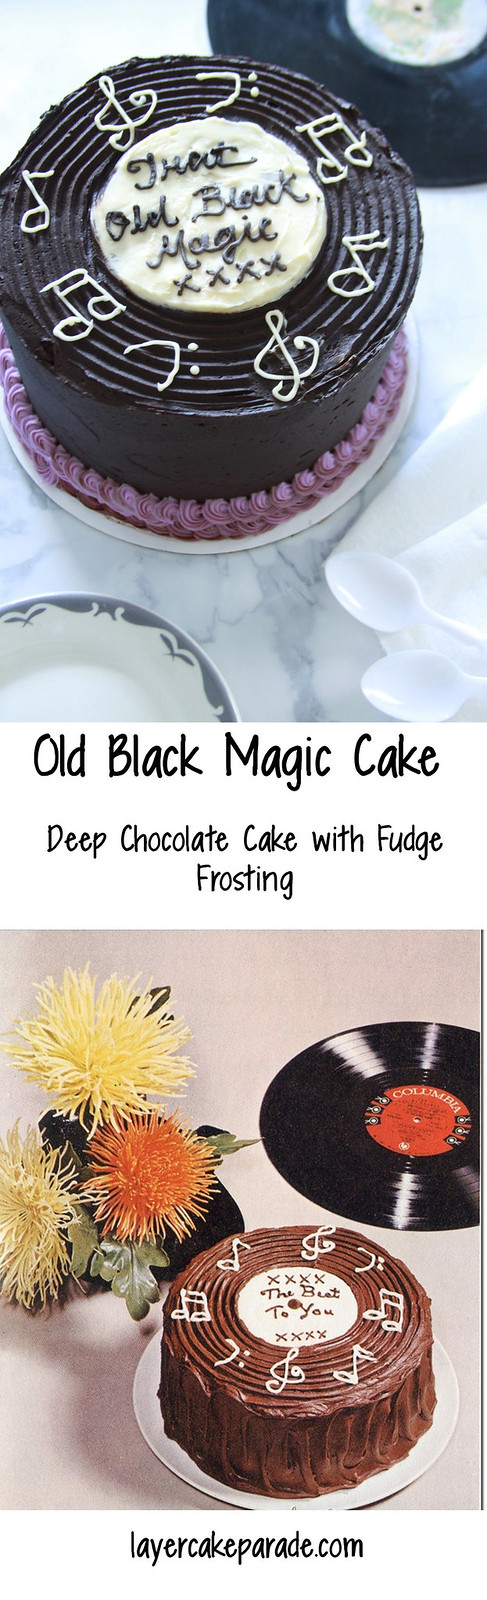 Old Black Magic Cake